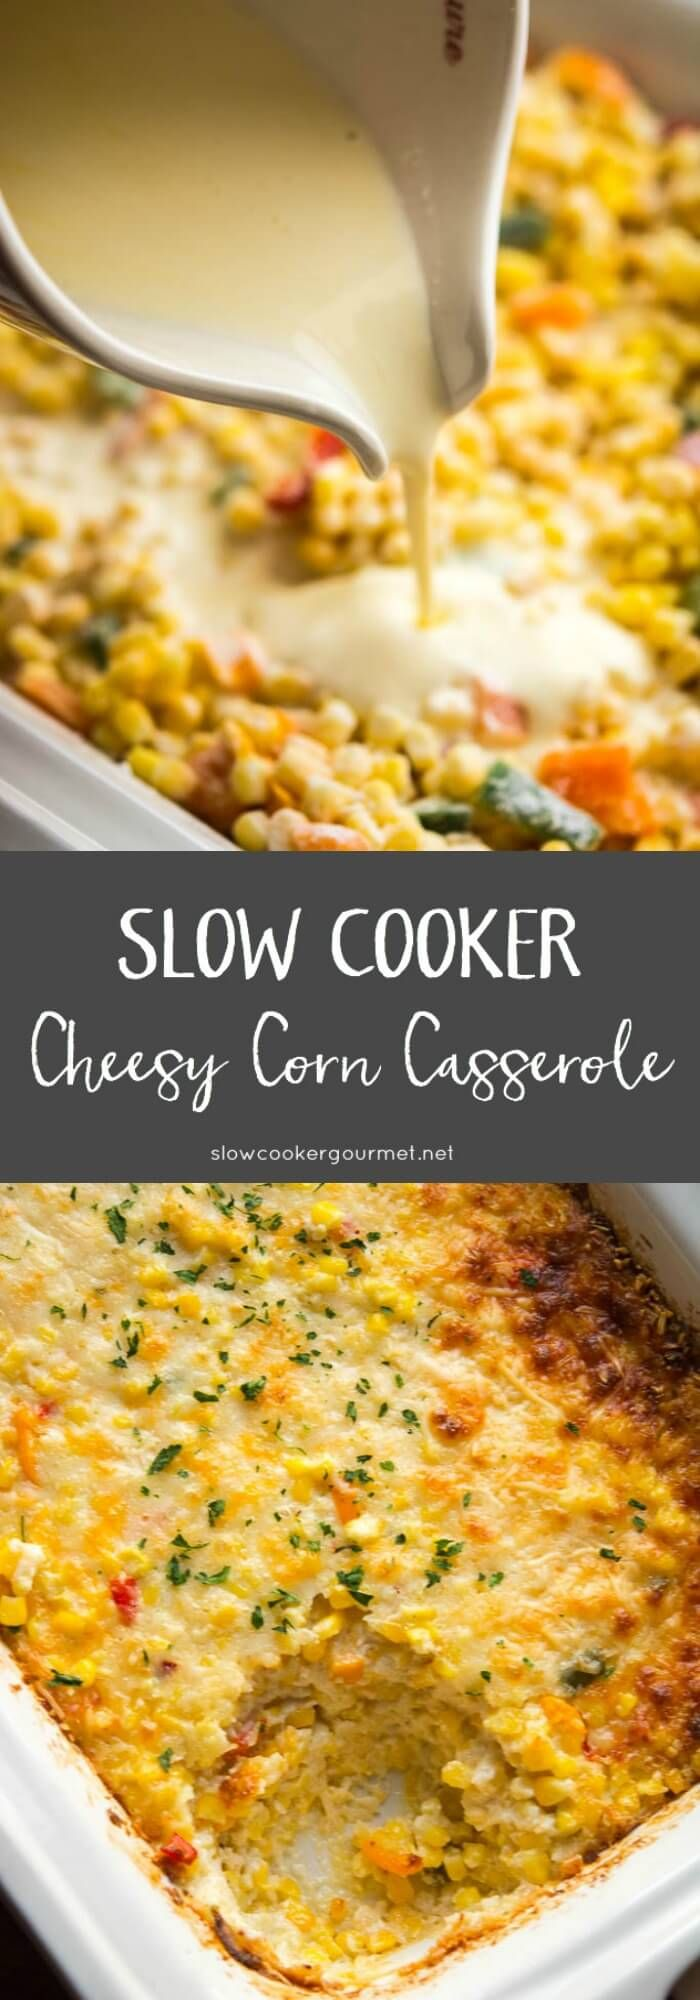 Cheesy side dishes are always perfect for the holidays! This Slow Cooker Cheesy Corn Casserole will save oven space and is so delicious you can watch it disappear!